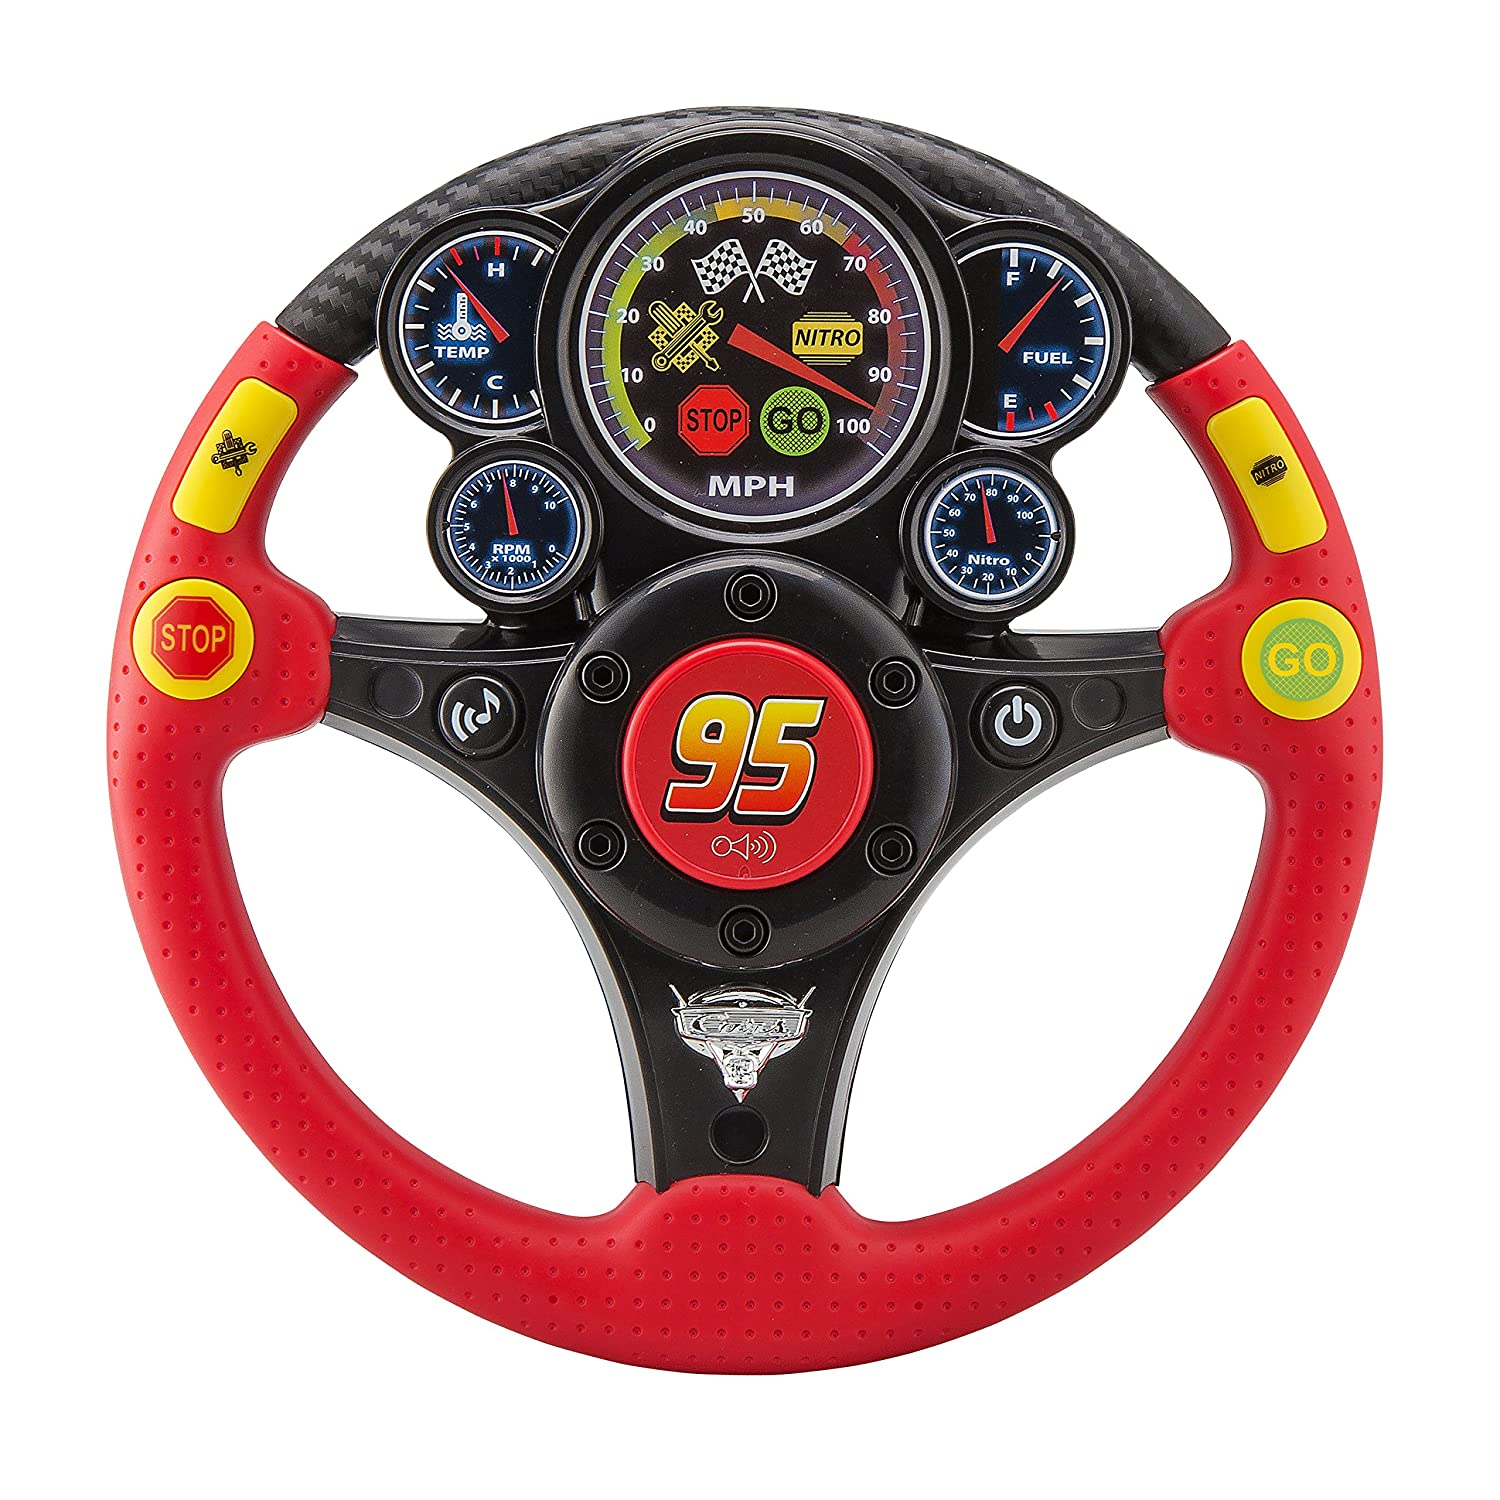 eKids Disney Pixar's Cars 3 MP3 Smart Wheel with Stream Catcher Technology